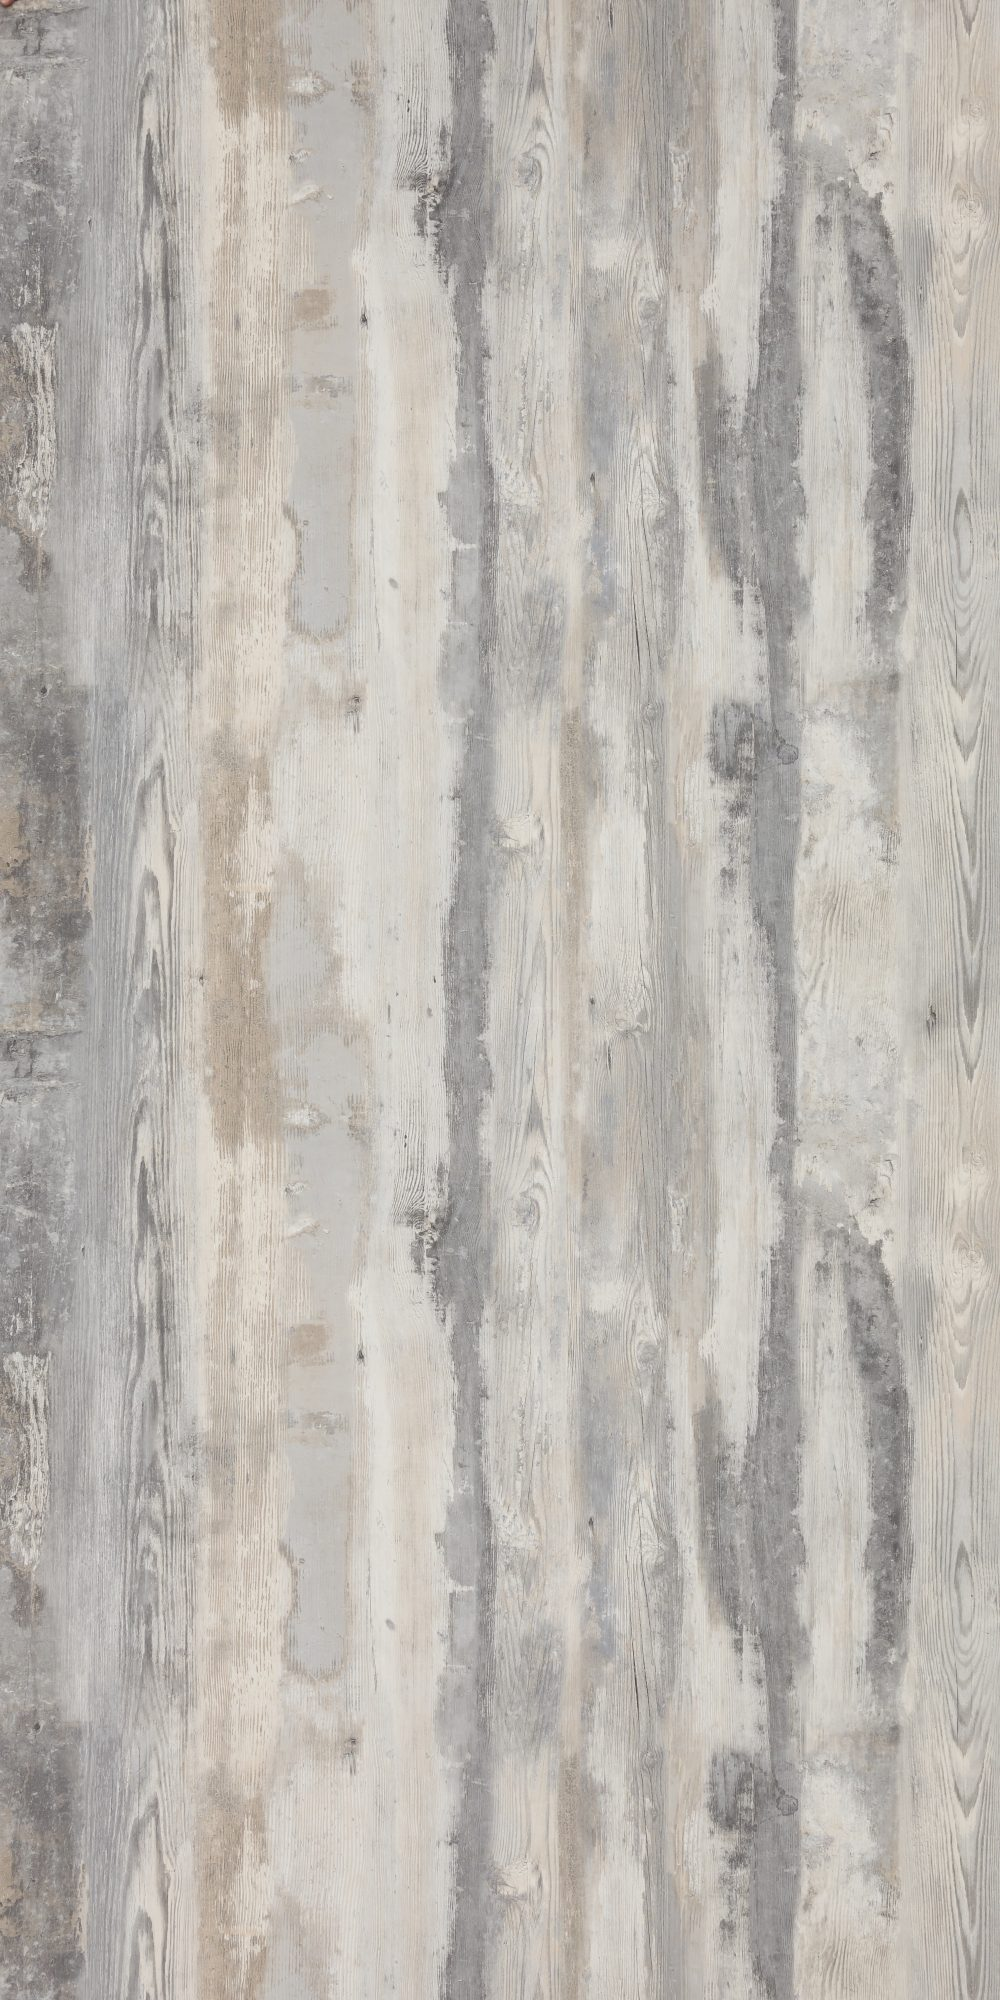 HPL Specials - Pine Wood White